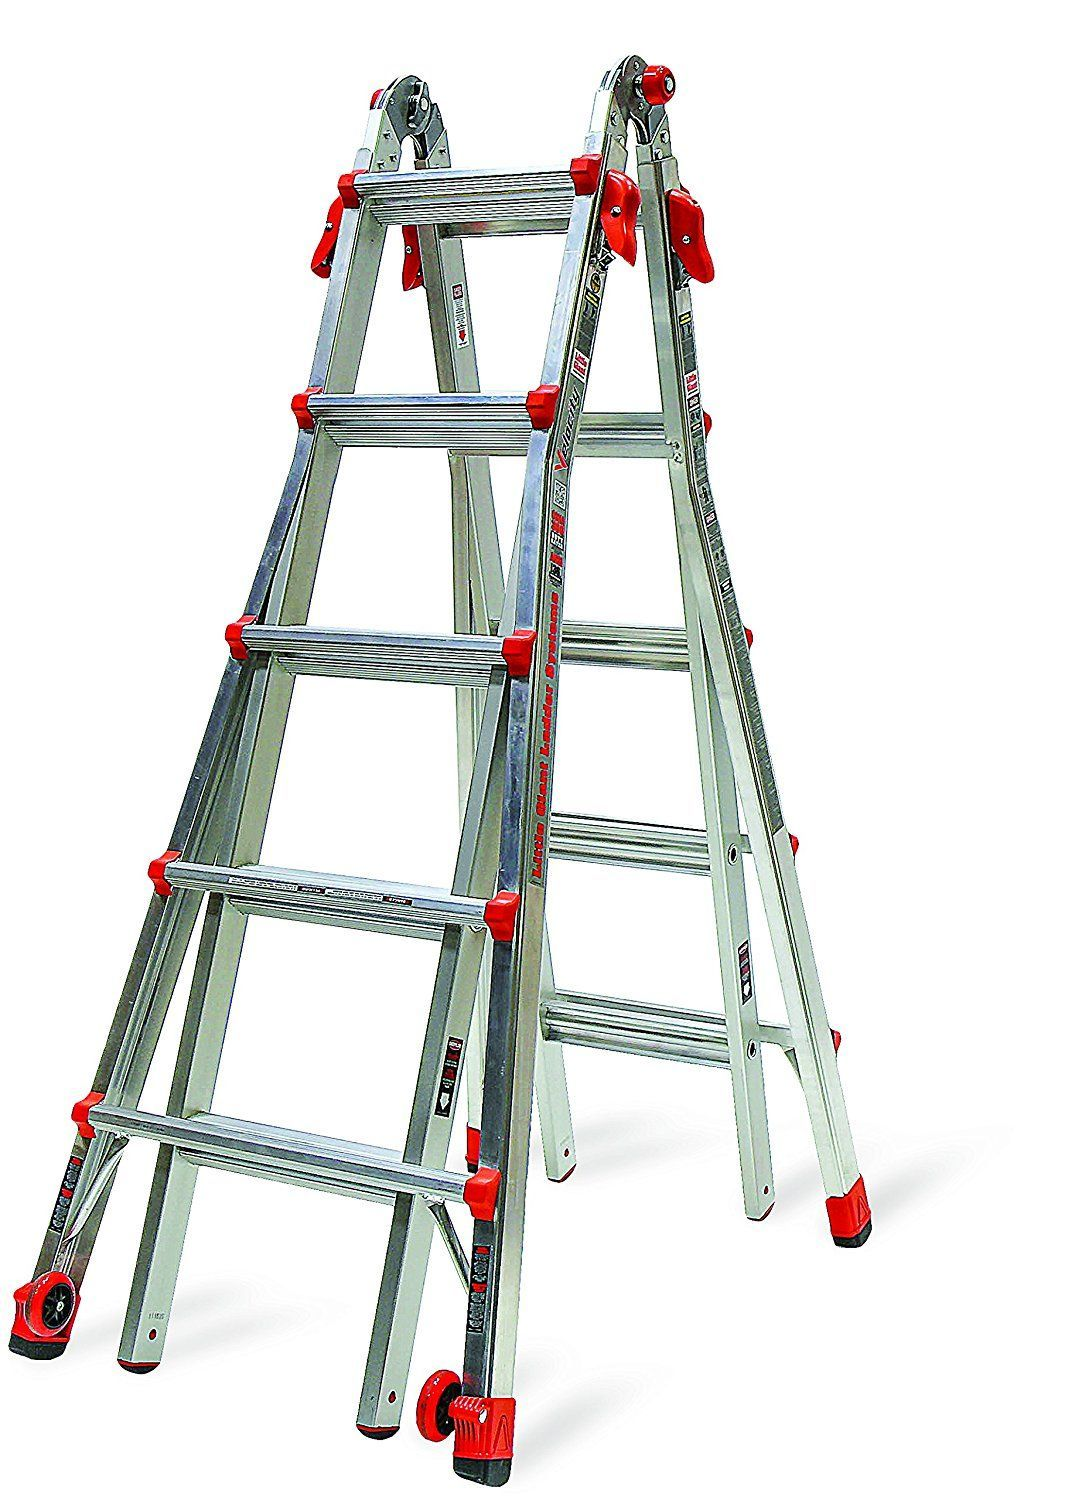 How To Hang A Ladder In The Garage Ladder Little Giants Step Ladders